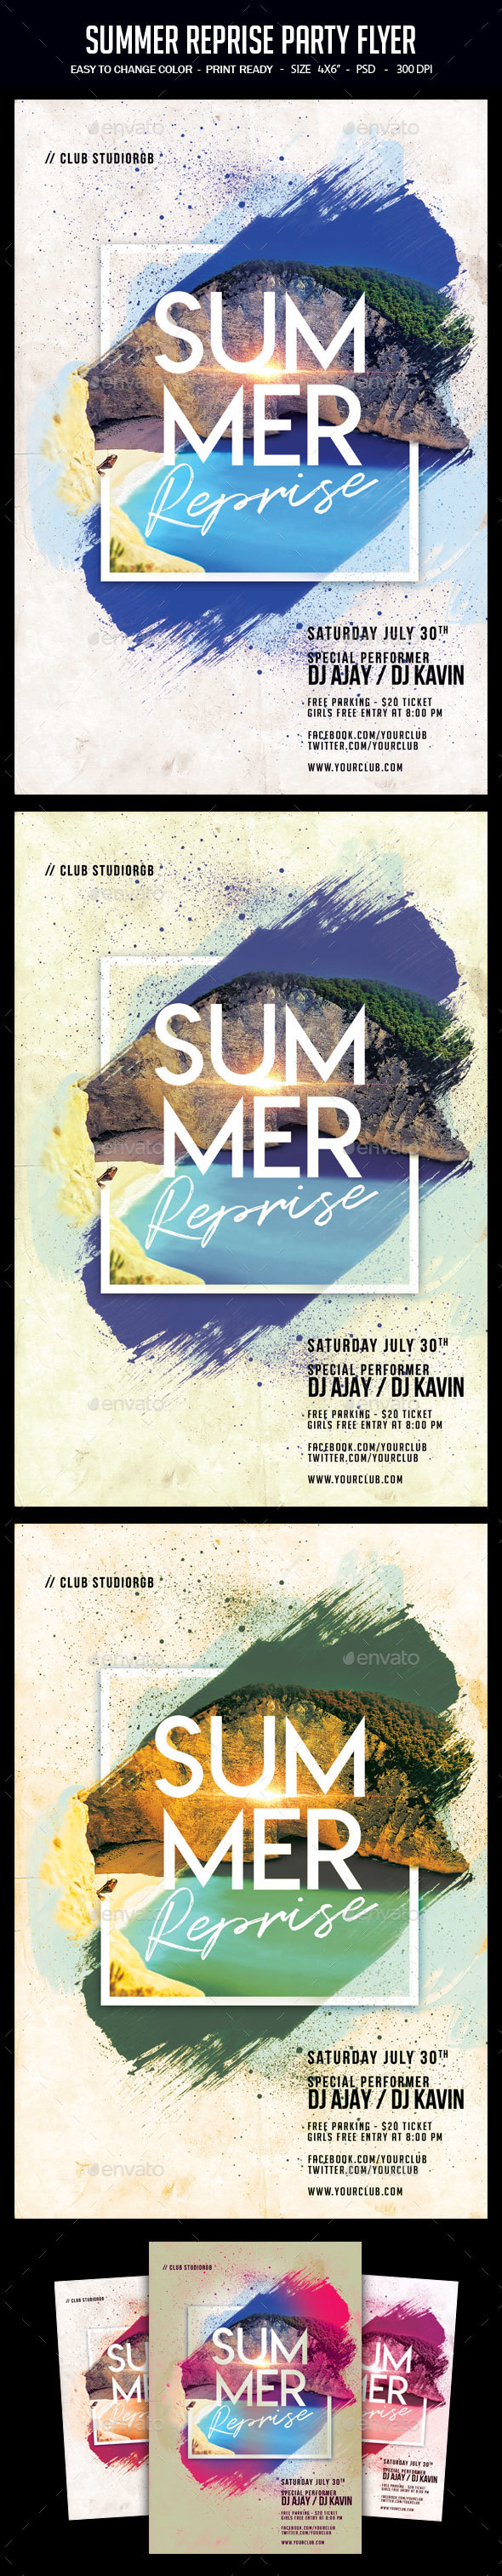 Summer Reprise Party Flyer - Clubs & Parties Events